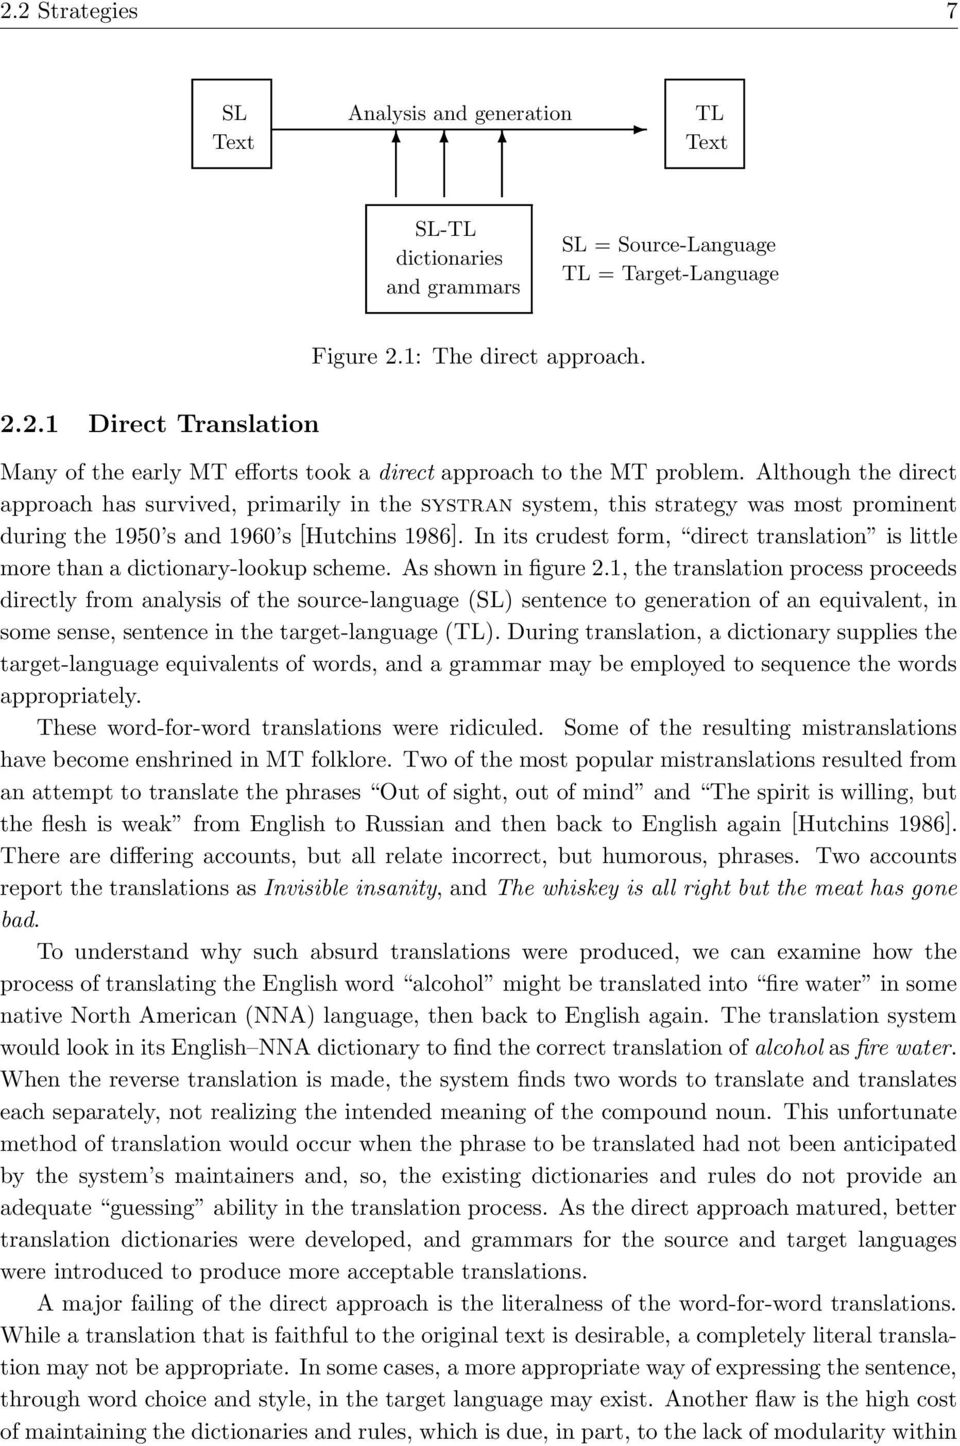 In its crudest form, direct translation is little more than a dictionary-lookup scheme. As shown in figure 2.